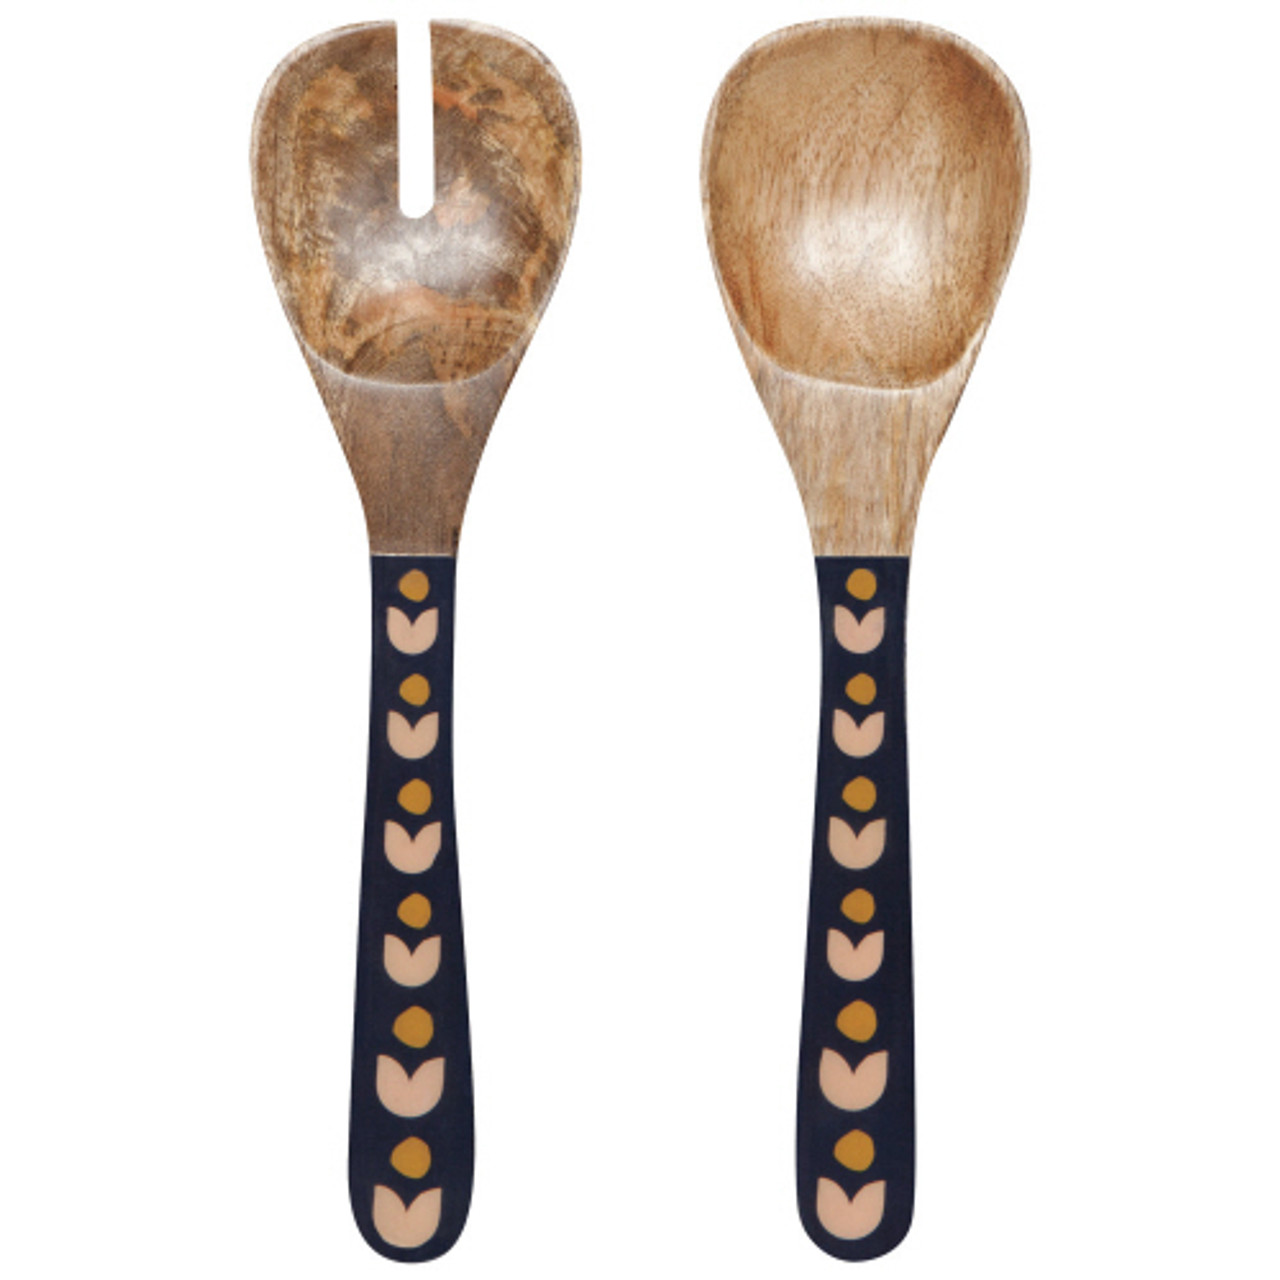 MANGO WOODEN SALAD SERVERS - SUPERBLOOM